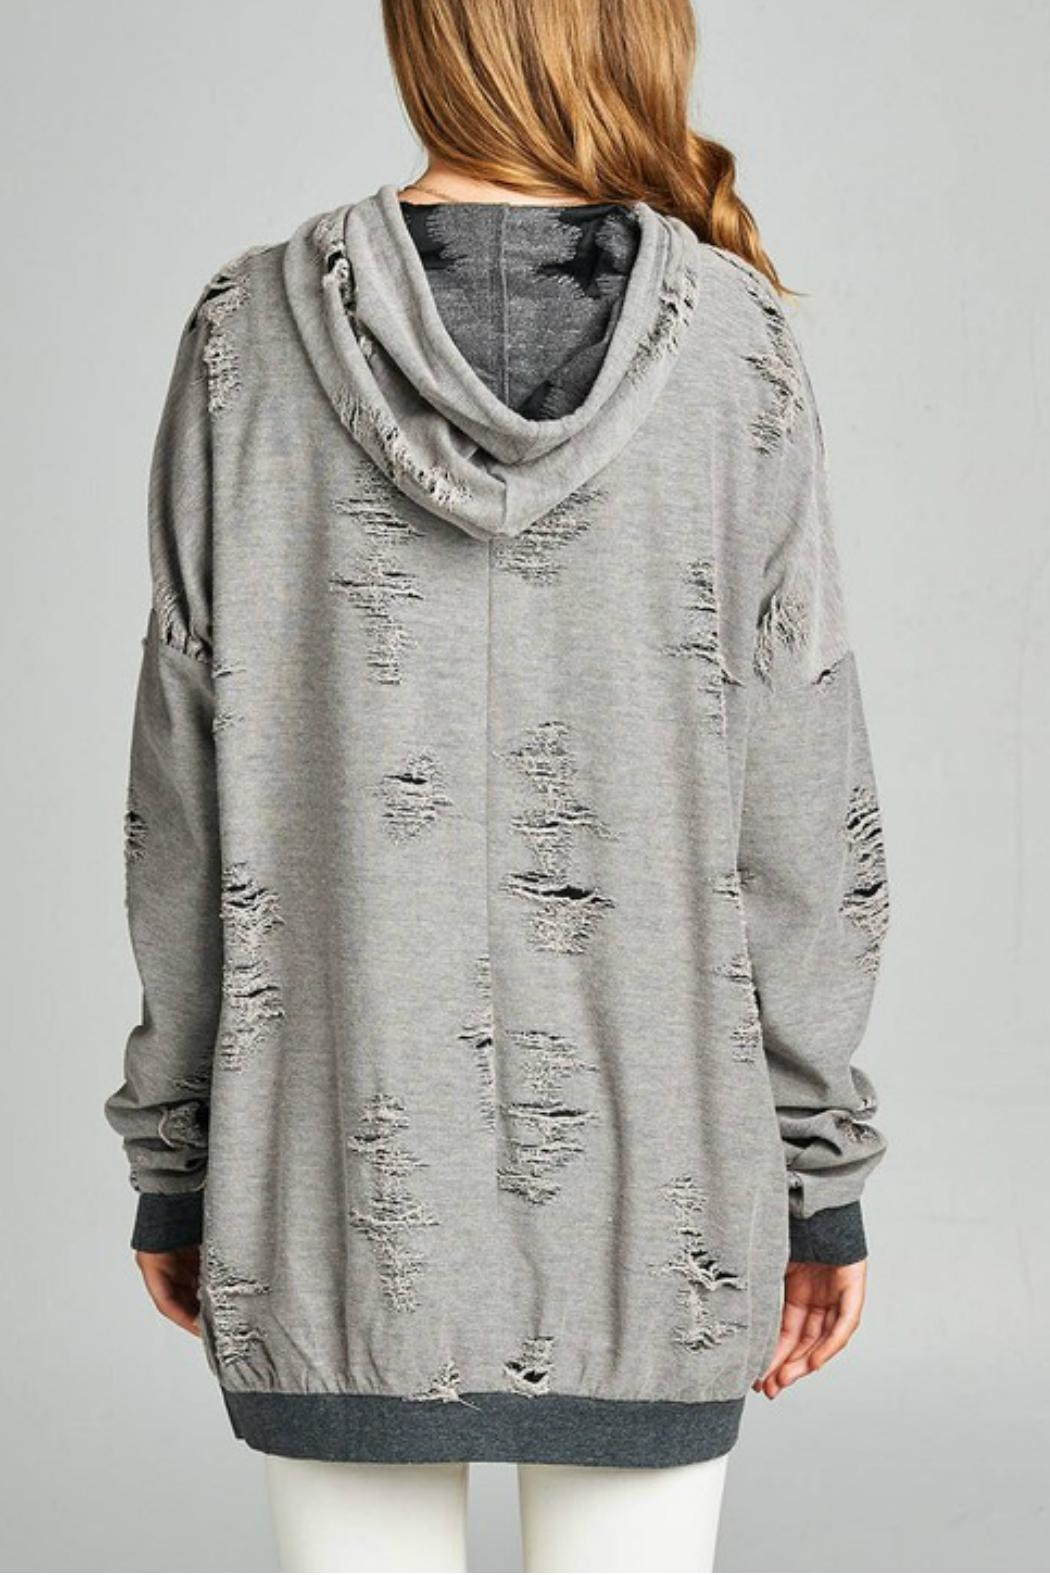 Minx Kira Distressed Sweater - Side Cropped Image